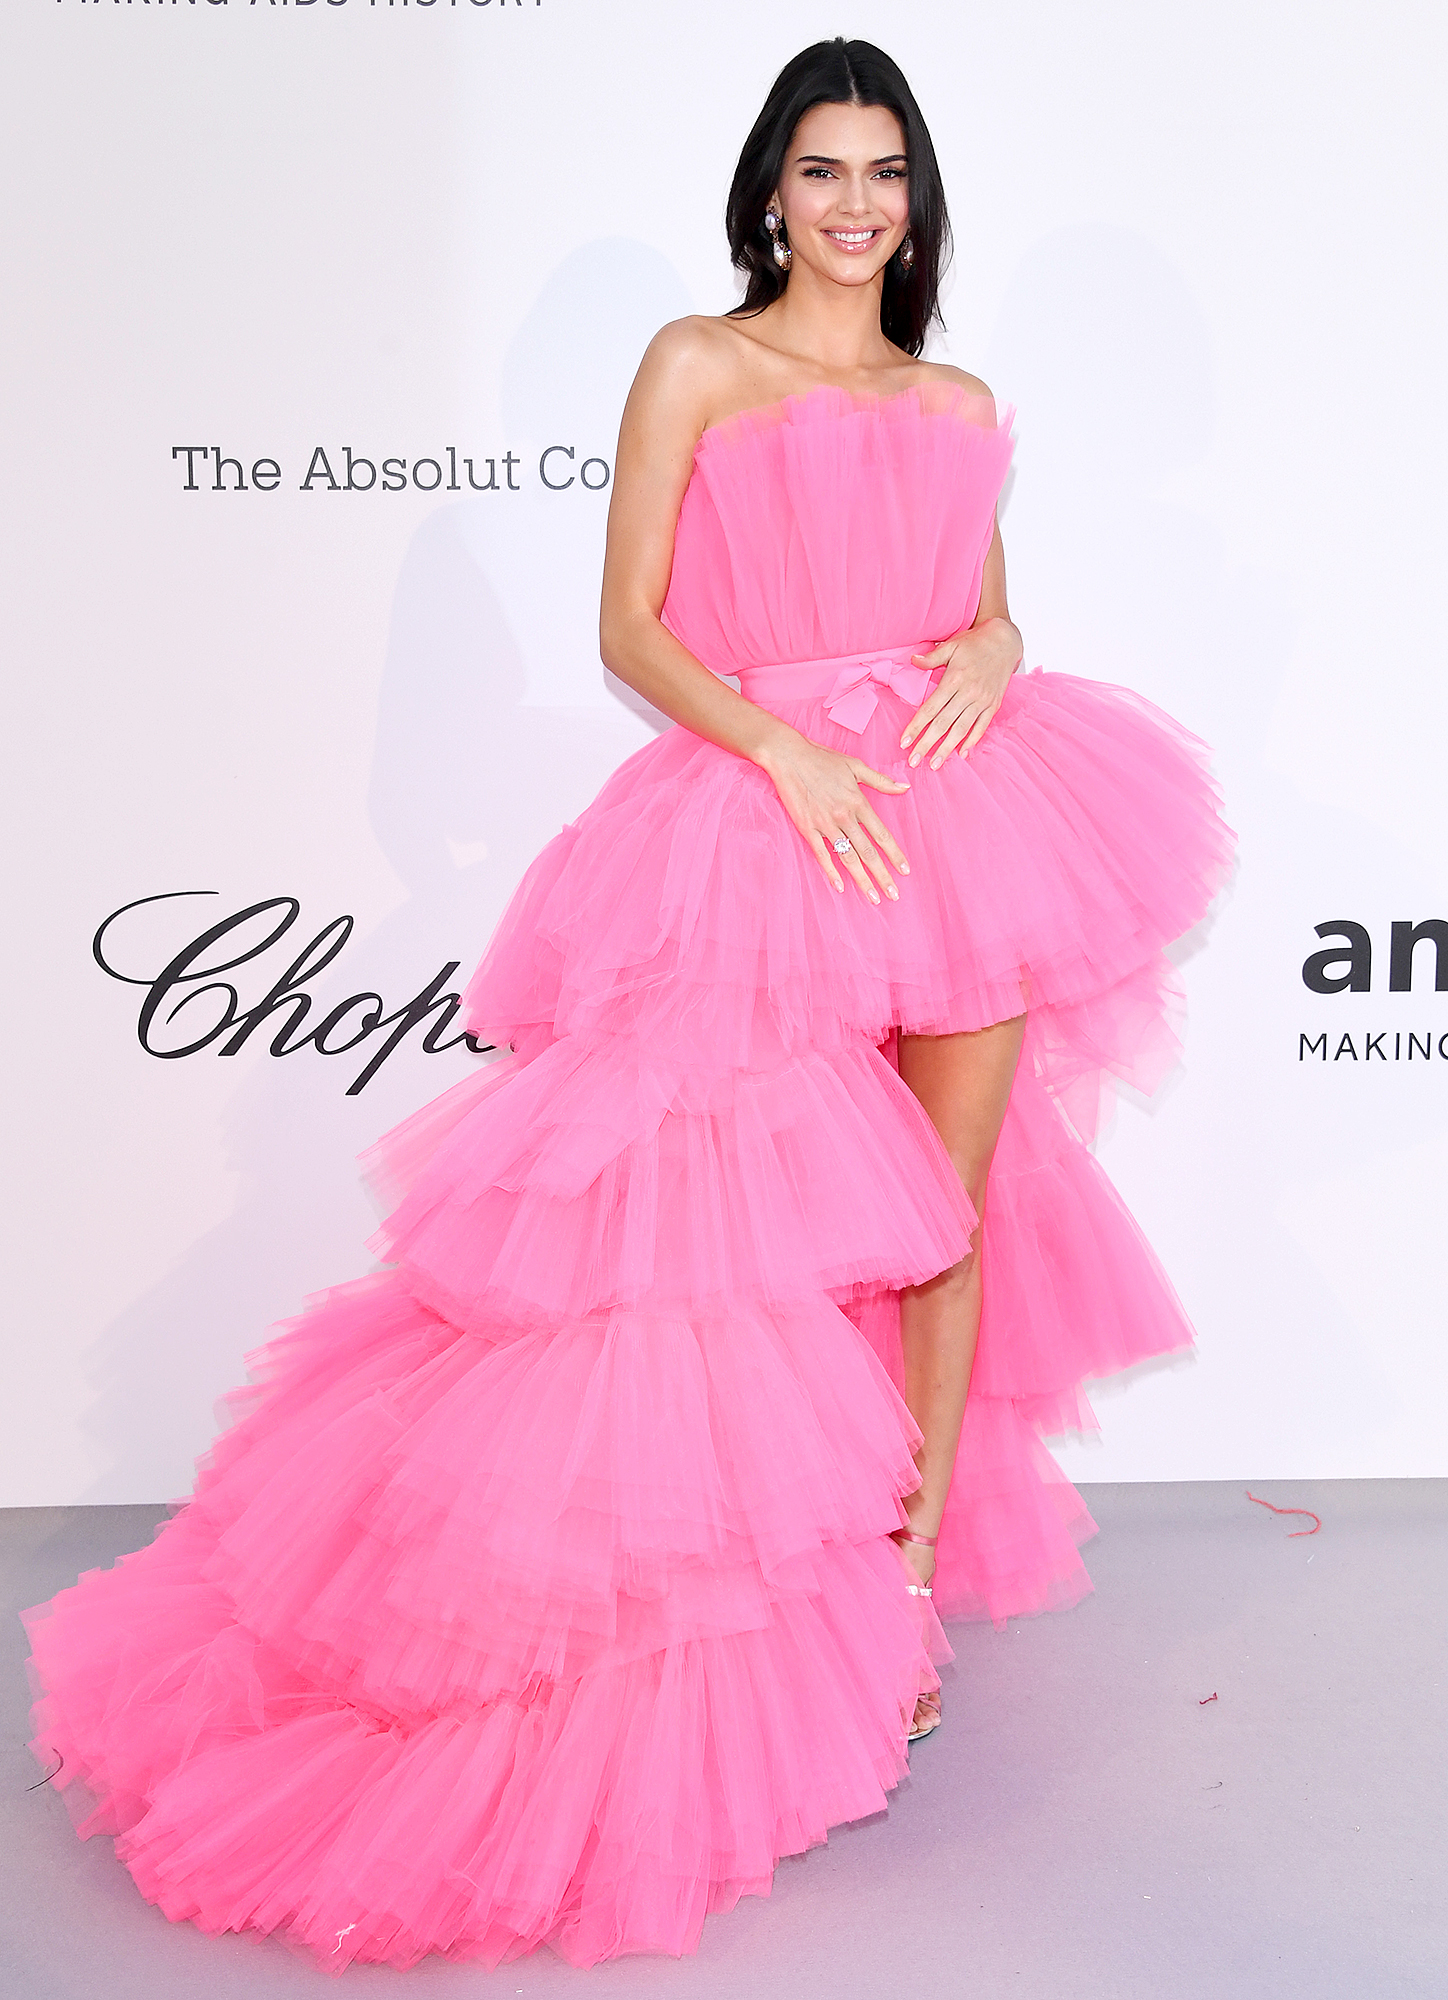 Kendall-Jenner - The reality star rocked one of the new dresses from the Giambattista Valli x H&M collab at the amfAR Cannes Gala on Thursday, May 23.